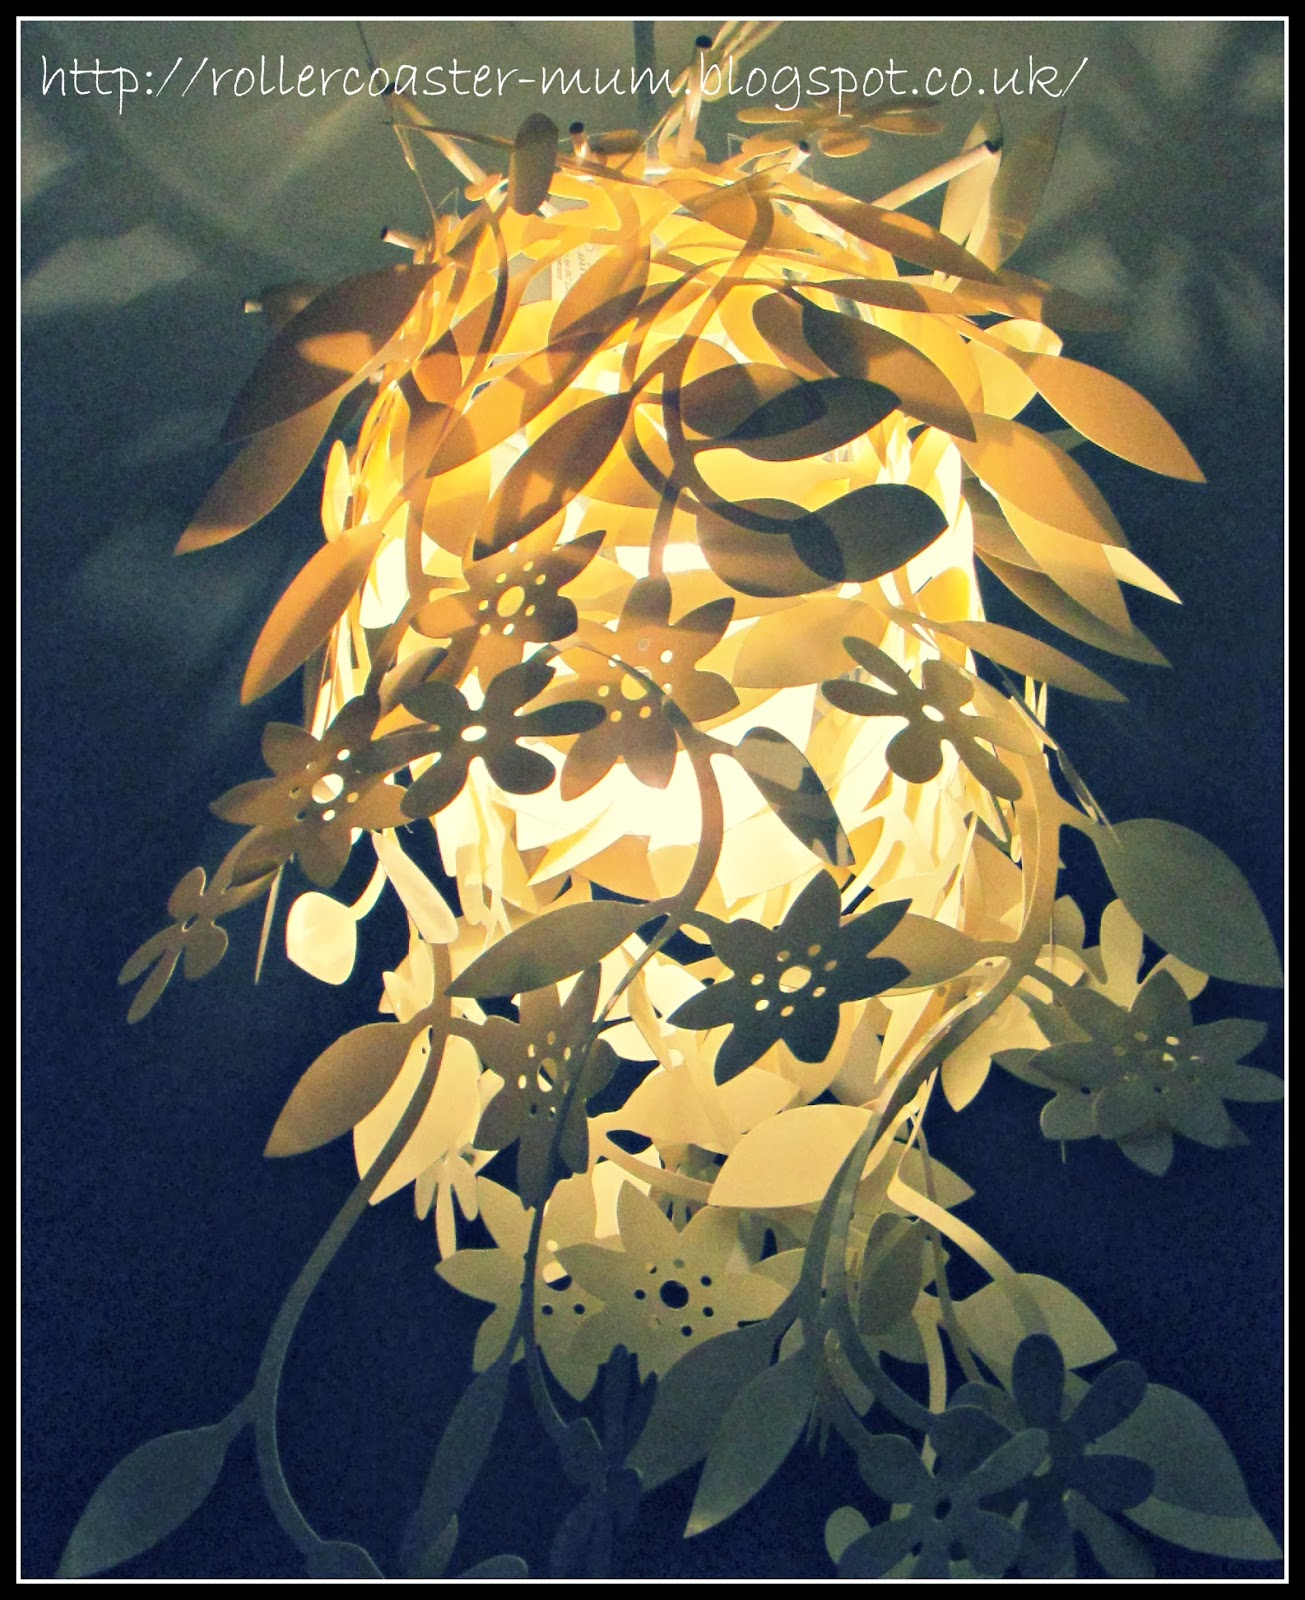 Flower ceiling light